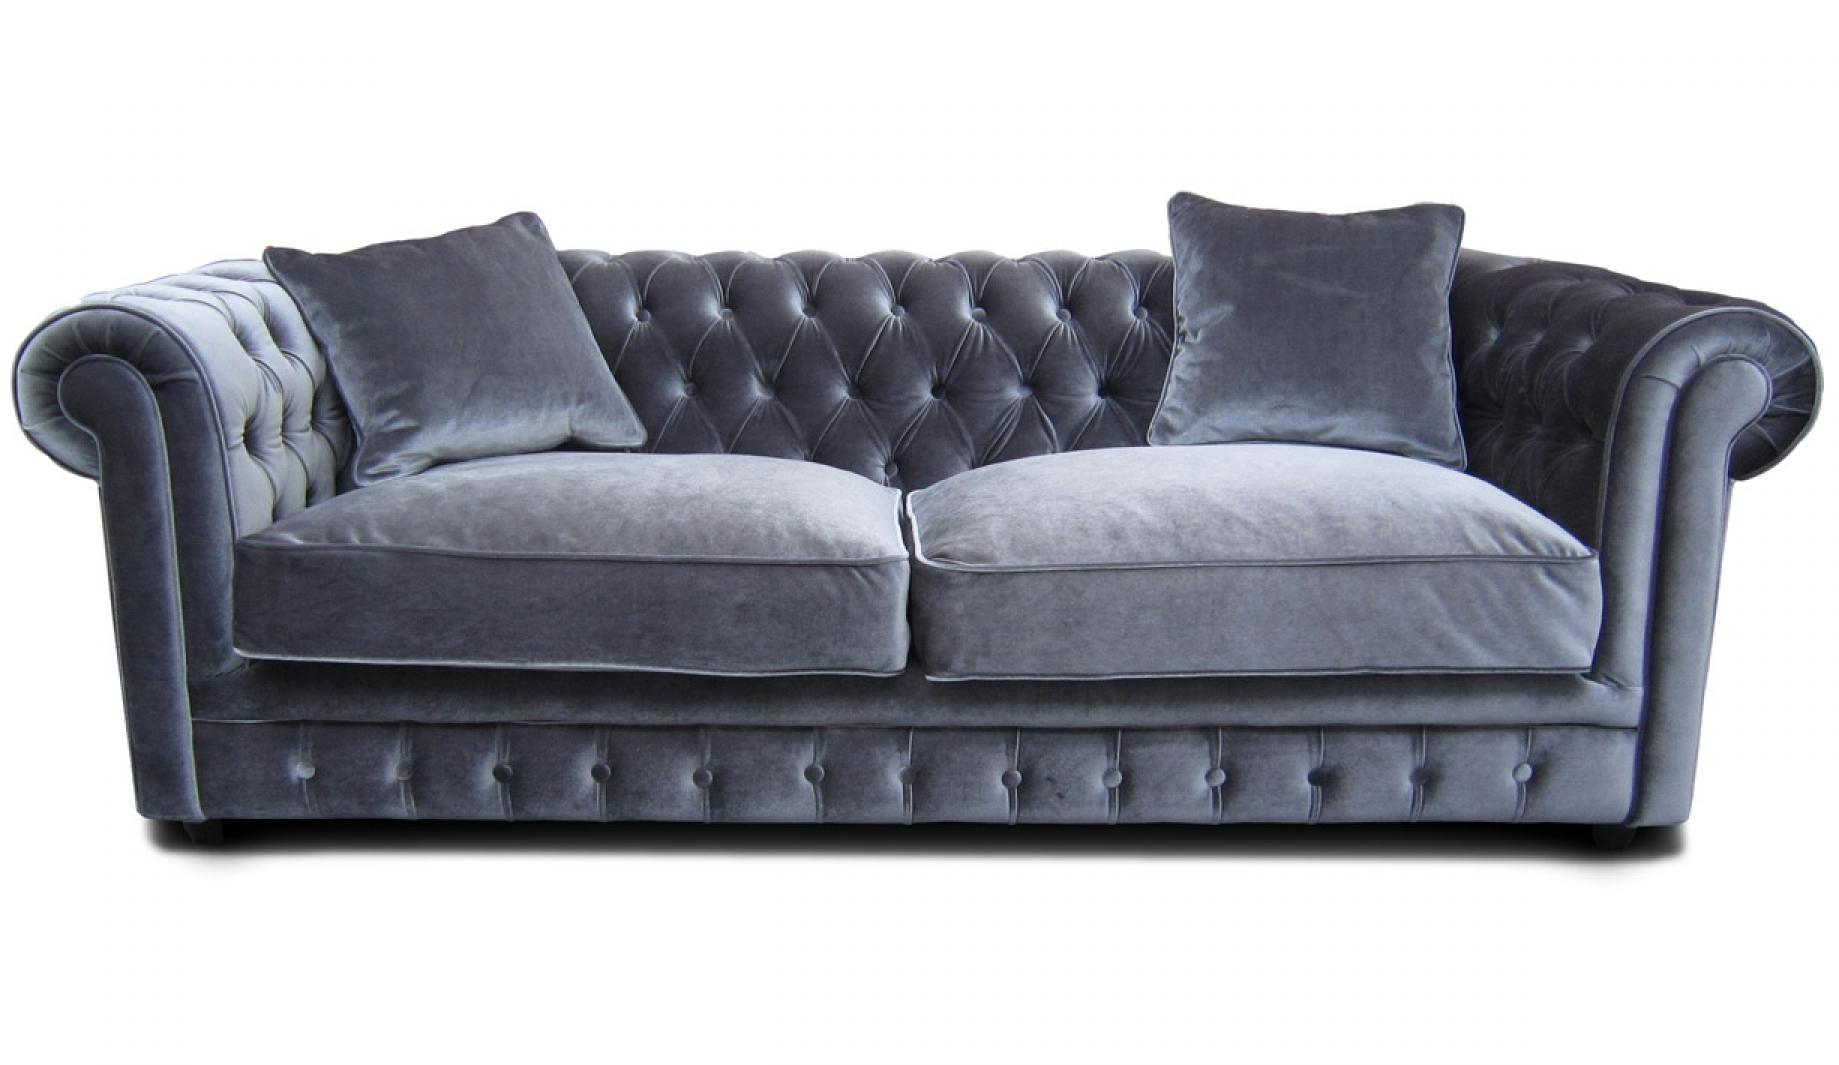 Chesterfield convertible pas cher canape chesterfield for Canape chesterfield pas cher